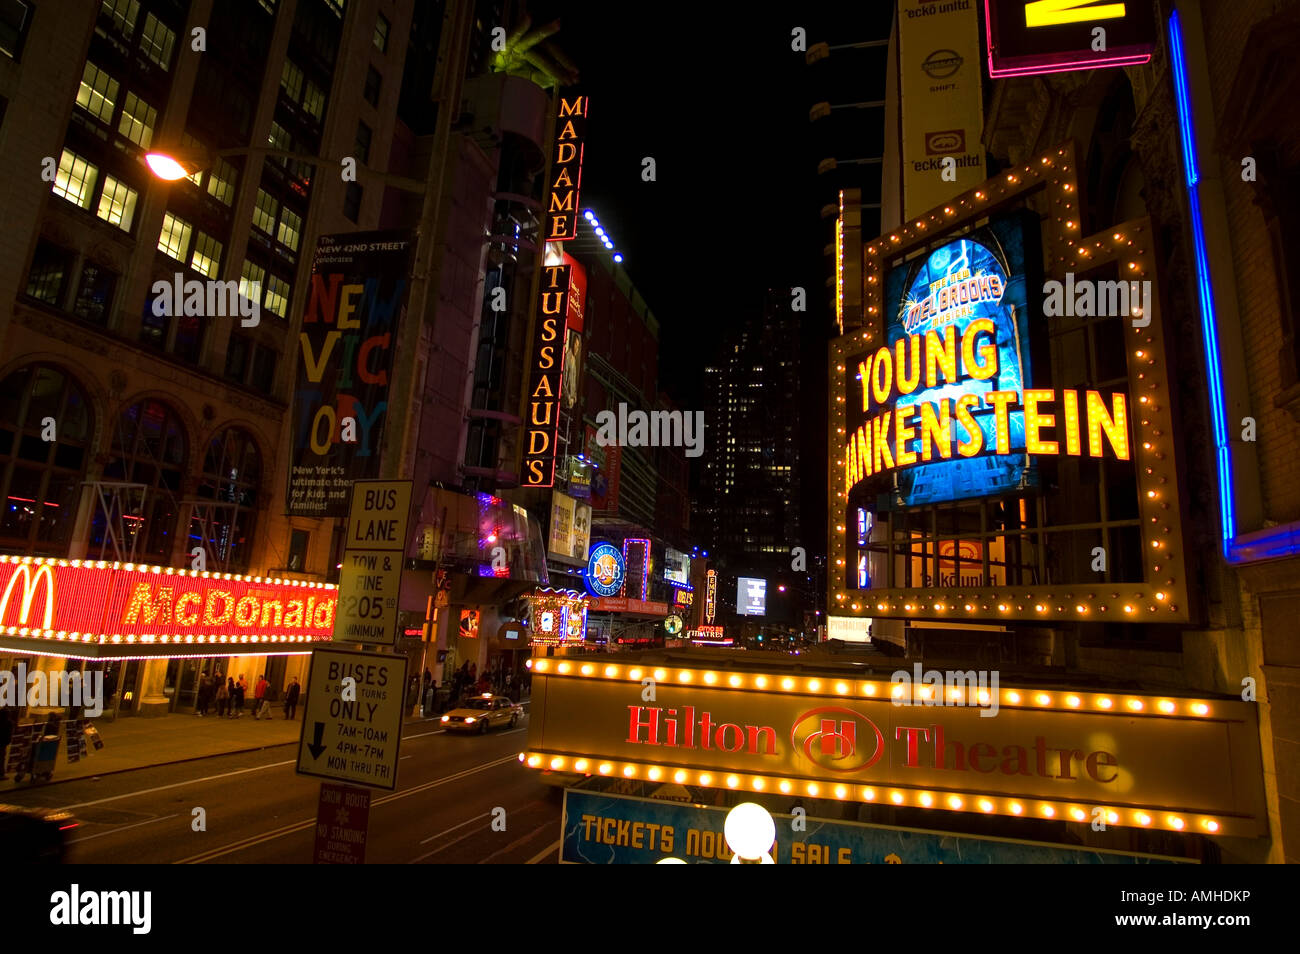 The marquee for the new Mel Brooks musical Young Frankenstein is seen on the Hilton Theatre on 42nd street - Stock Image